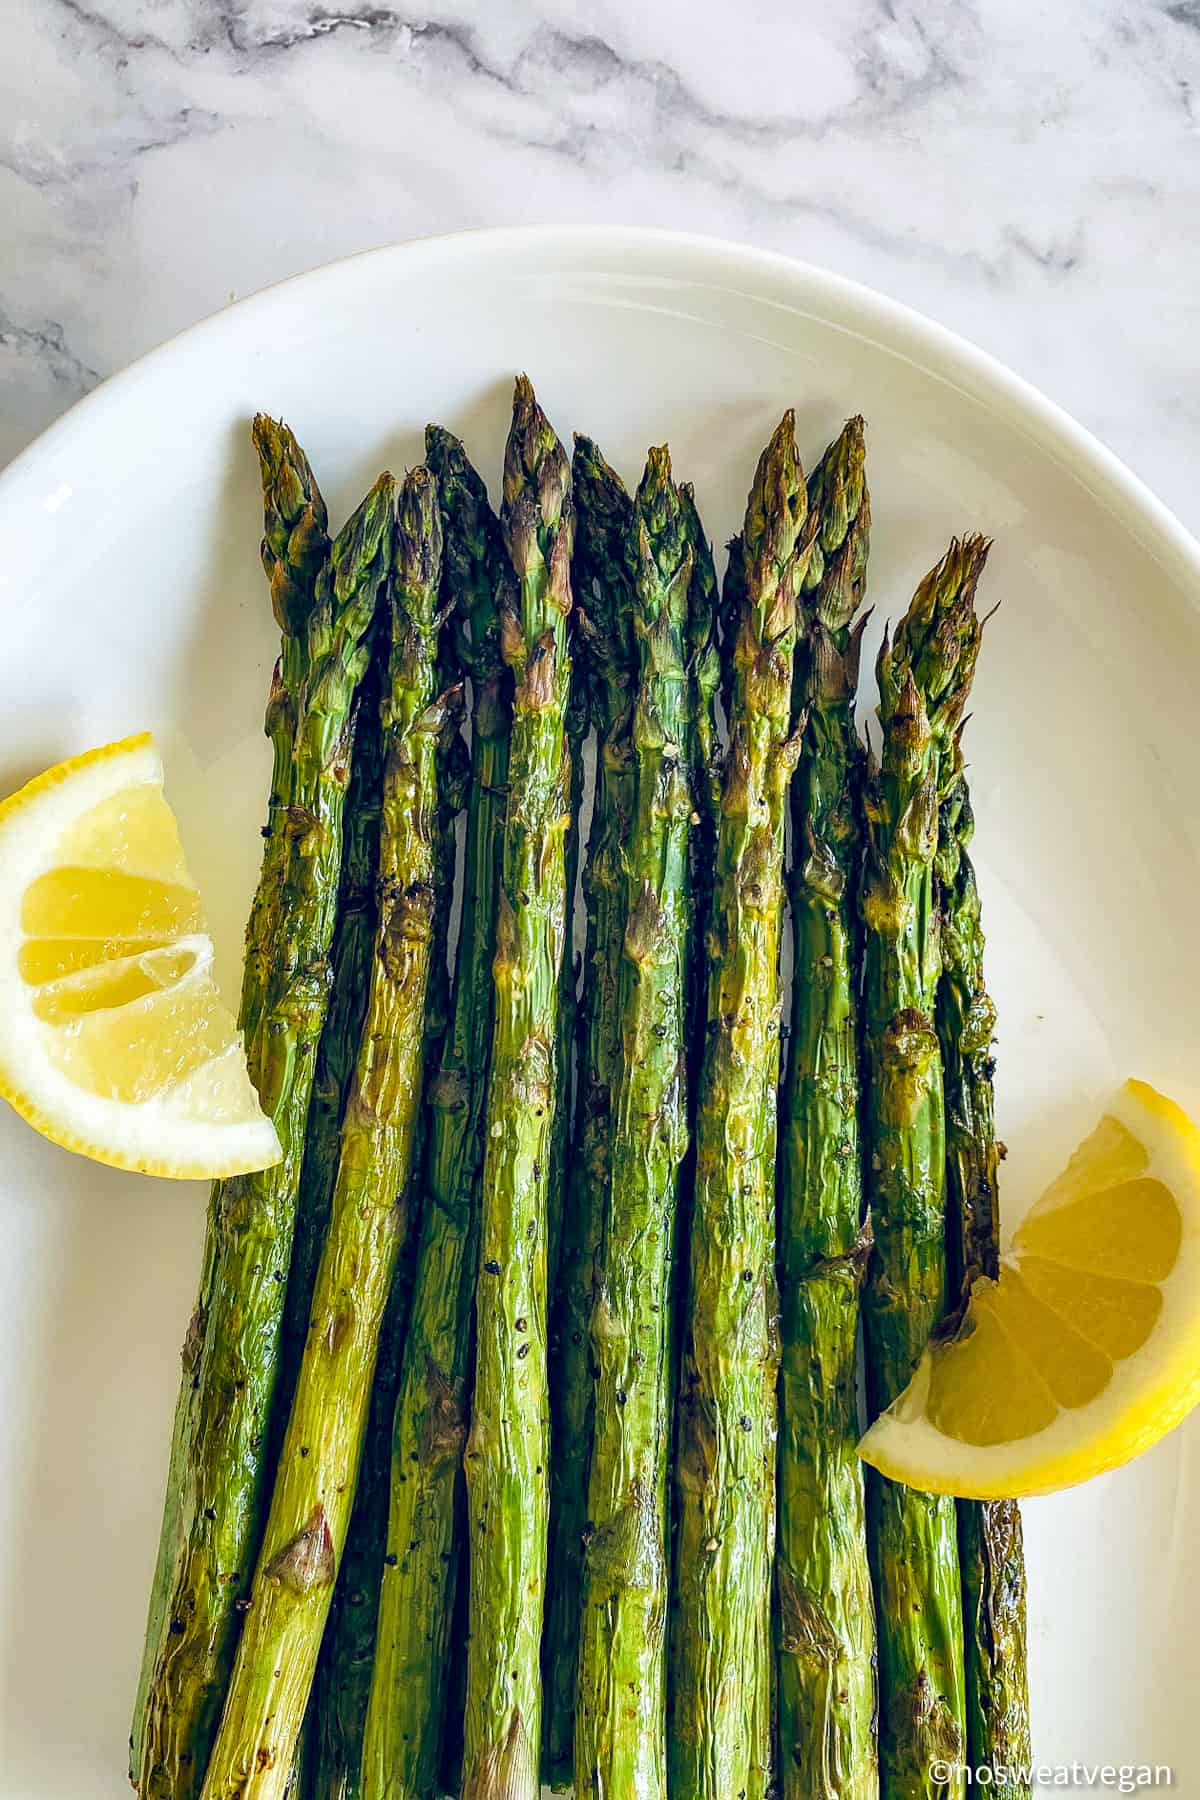 Air fryer asparagus on a plate with lemon wedges.